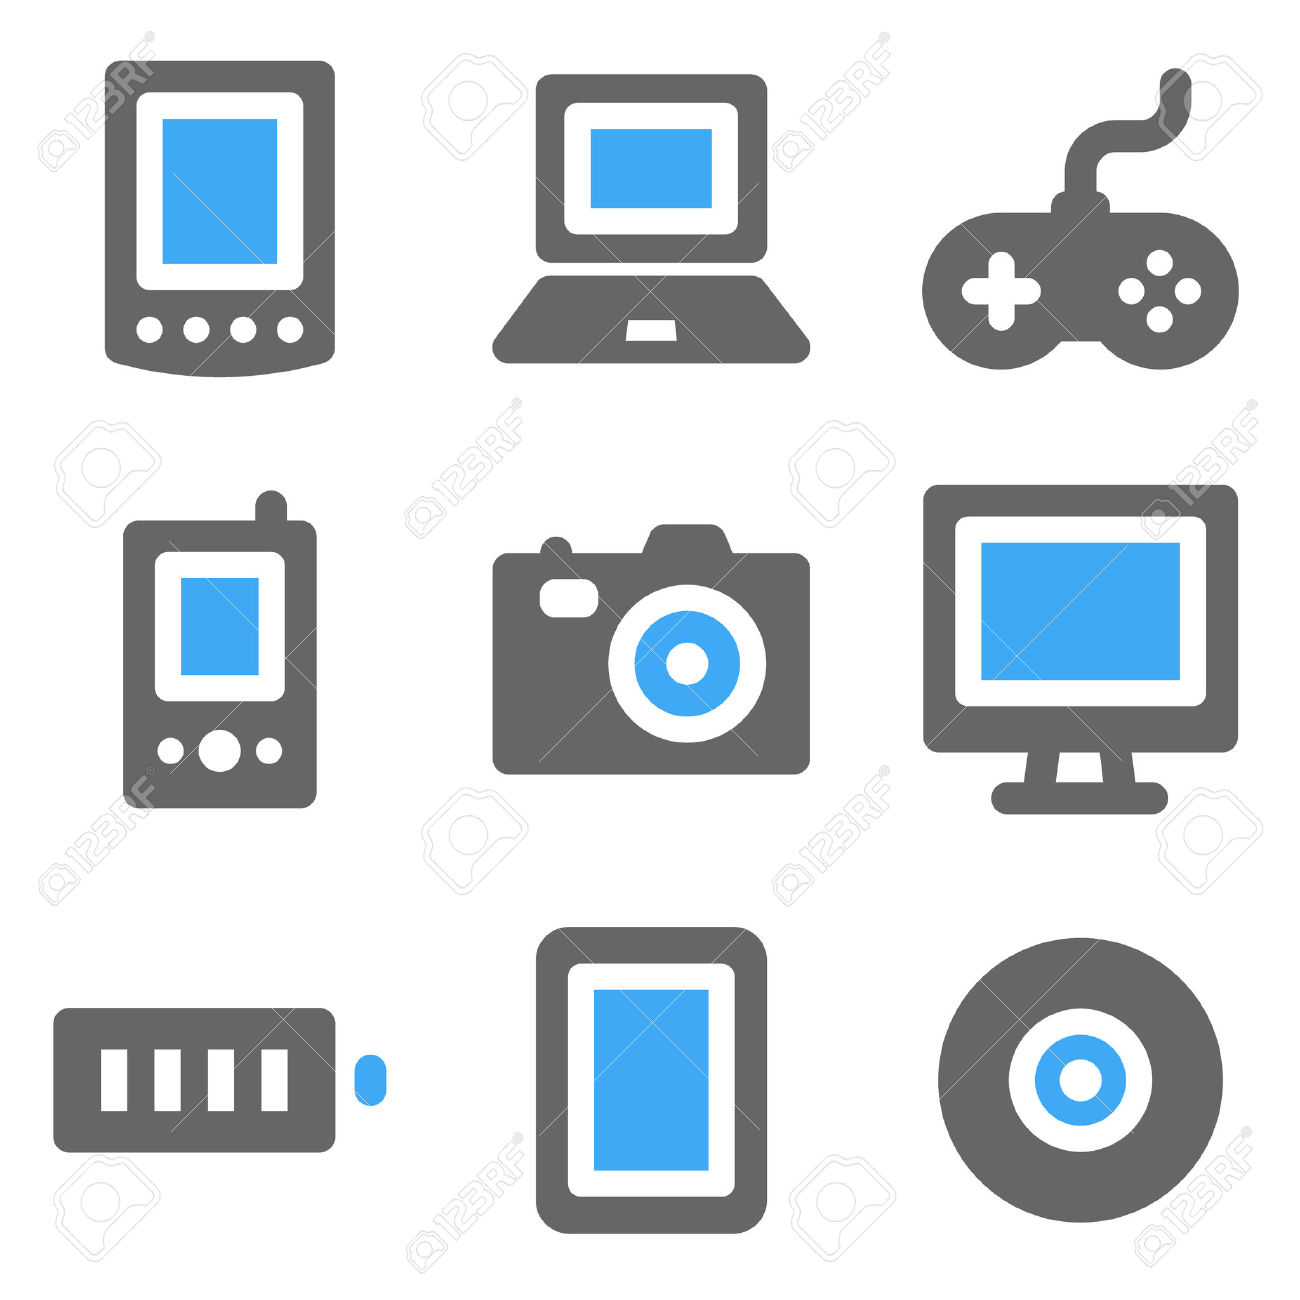 Electronics cliparts stock Electronics Web Icons, Blue And Grey Solid Icons Royalty Free ... stock